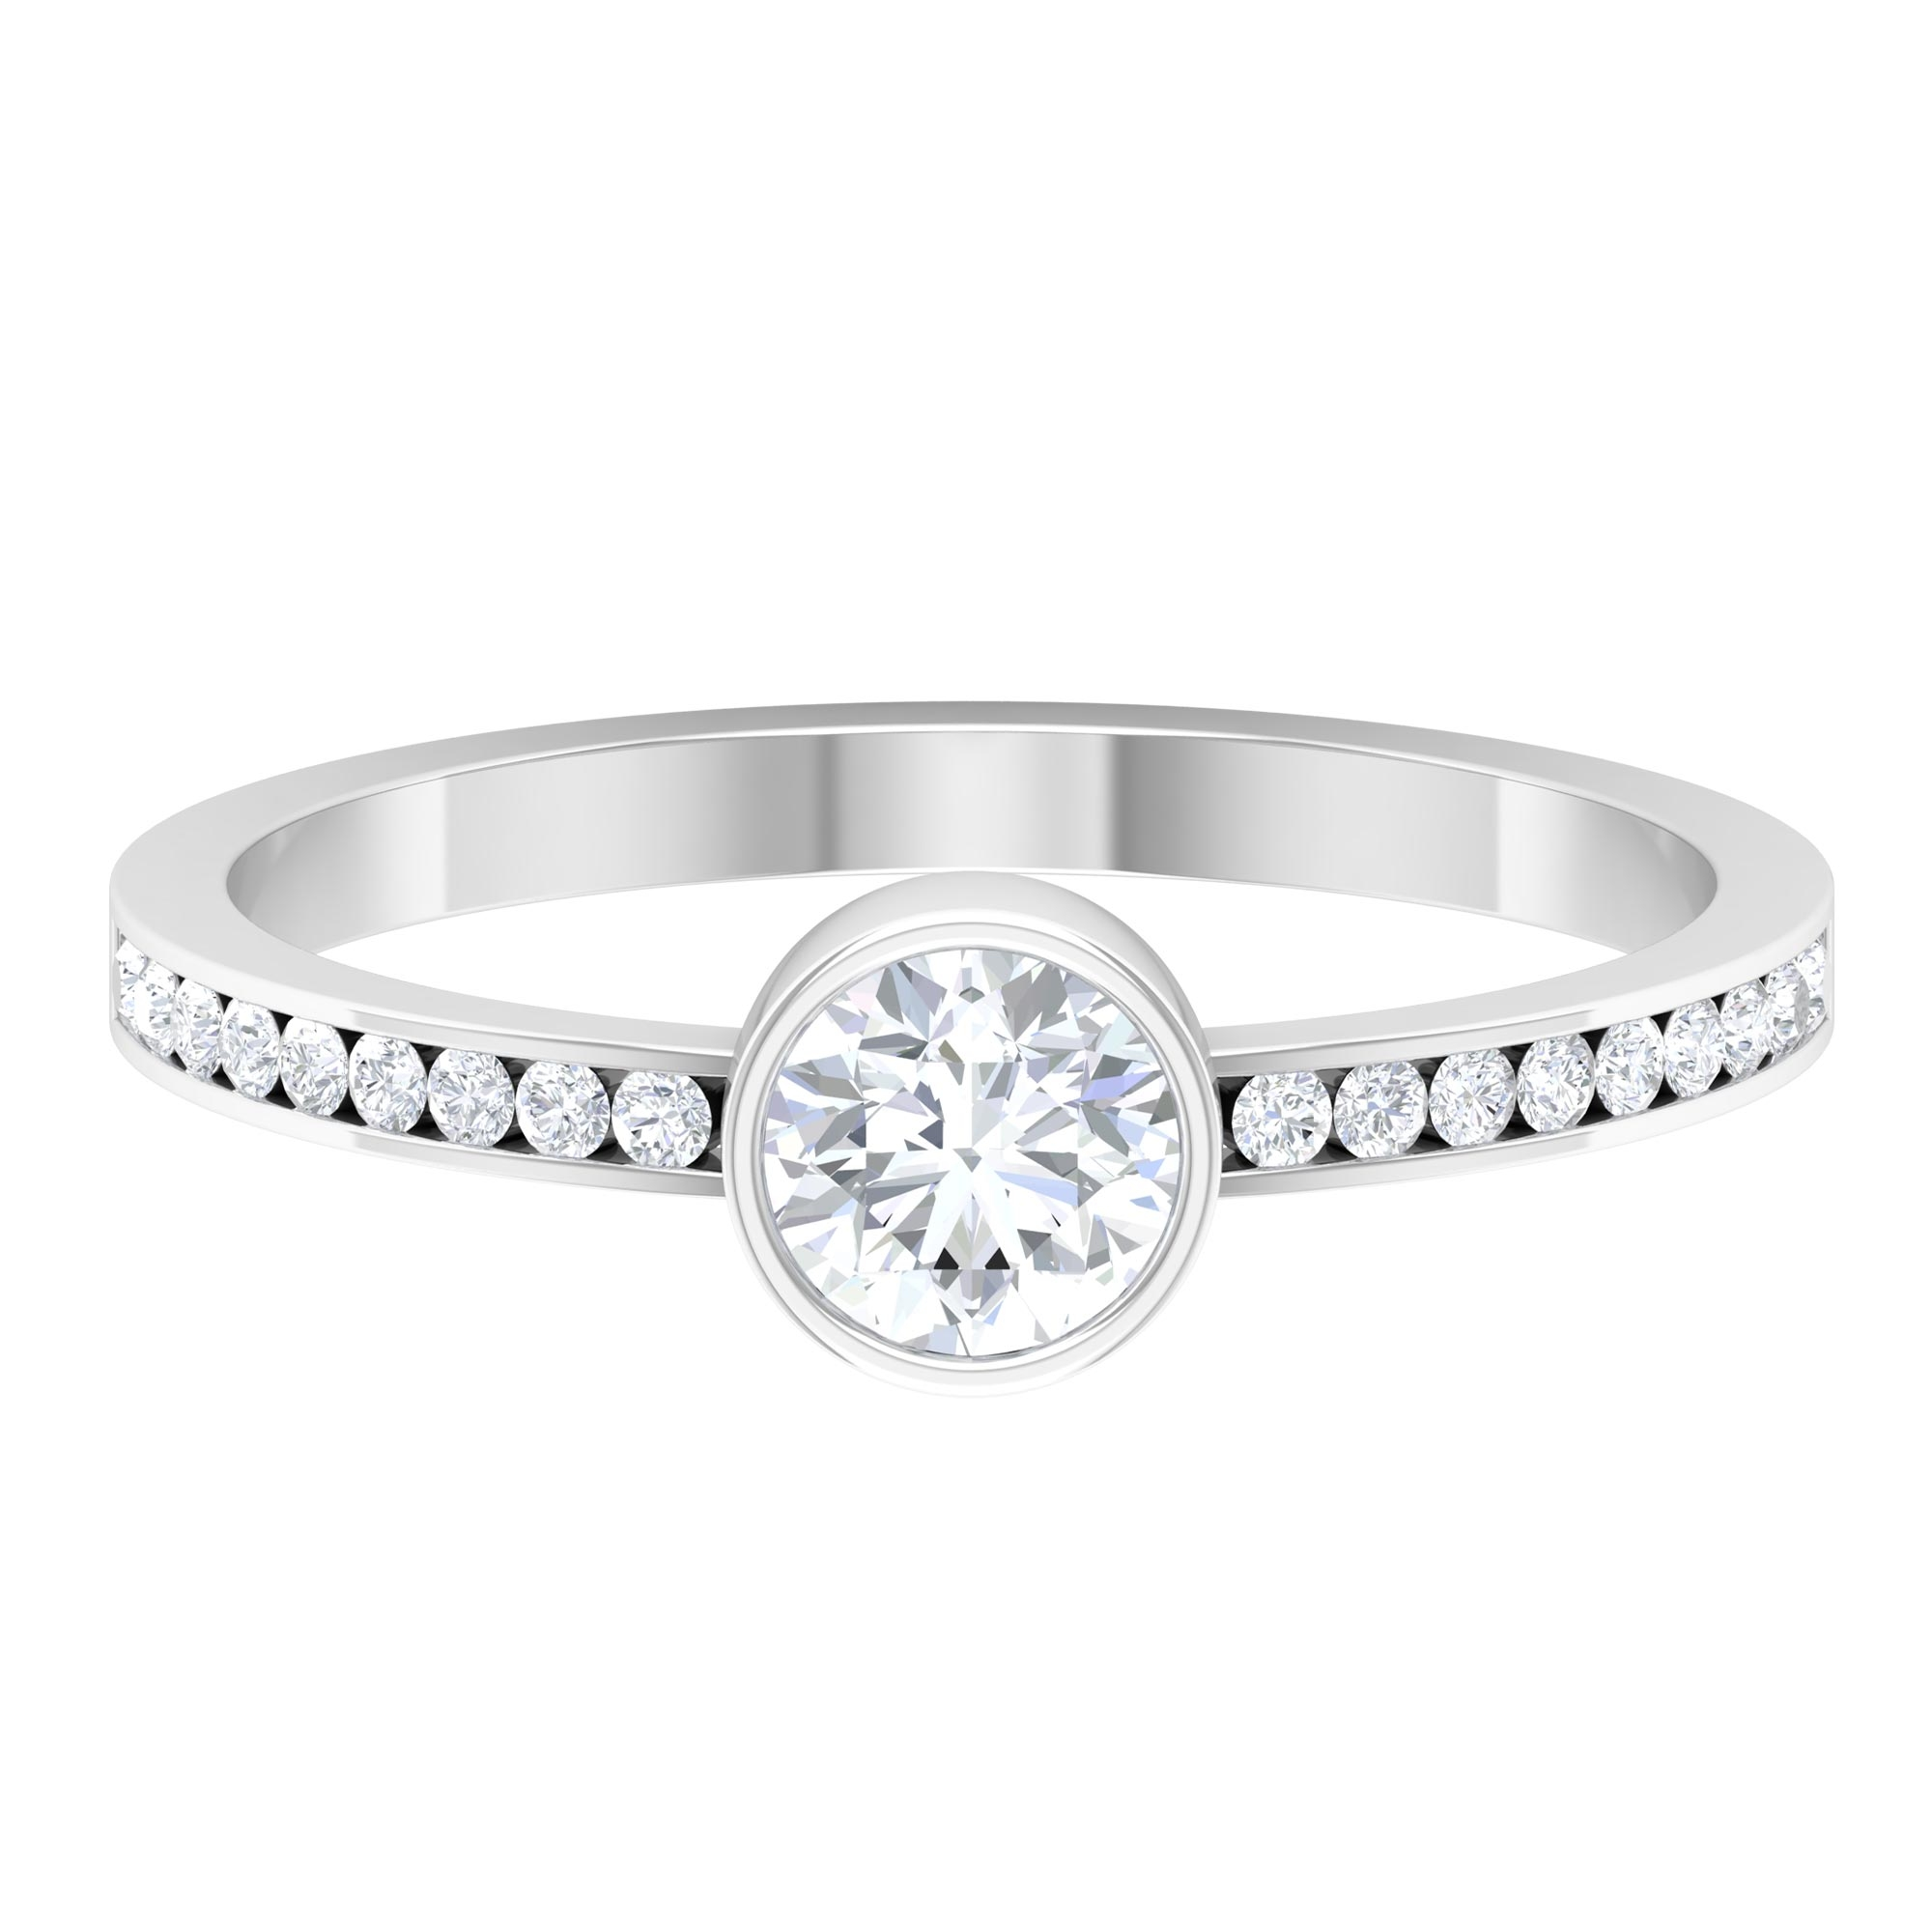 3/4 CT Round Cut Diamond Solitaire Ring in Bezel Setting with Channel Set Side Stones